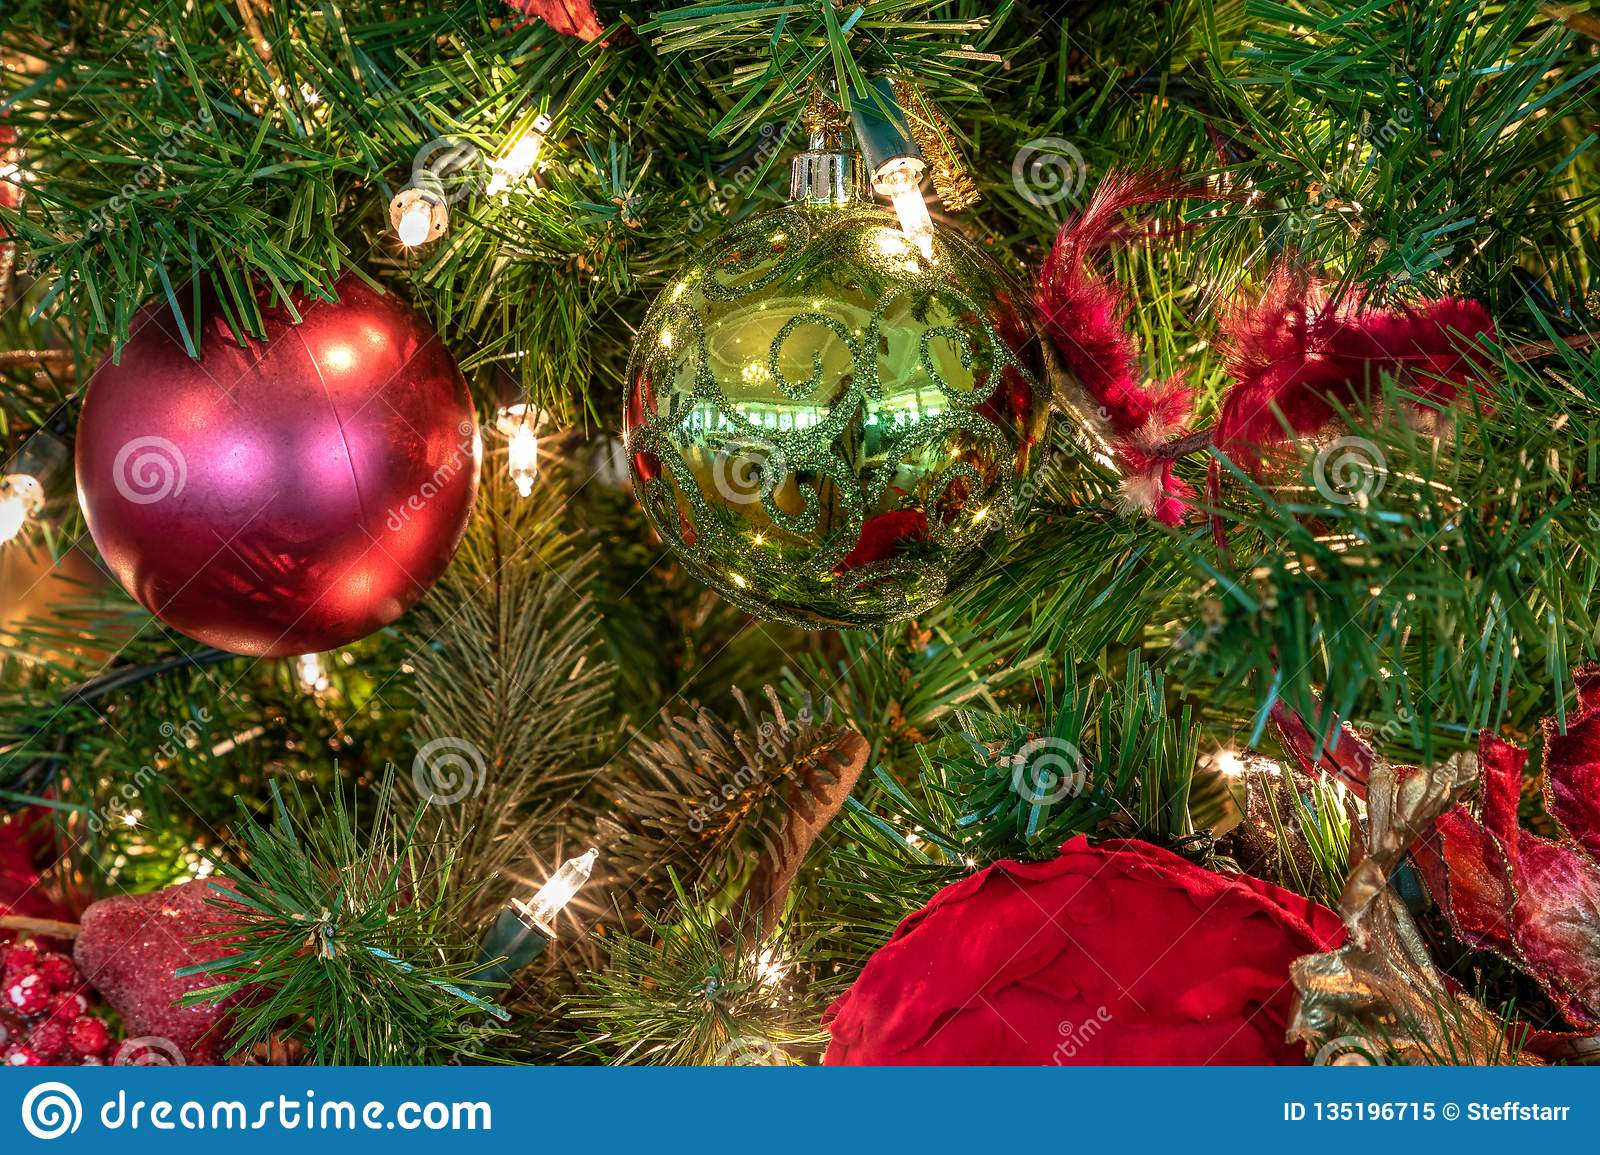 Red And Green Ornaments On A Christmas Tree With White Lights Stock Image - Image of glowing ...